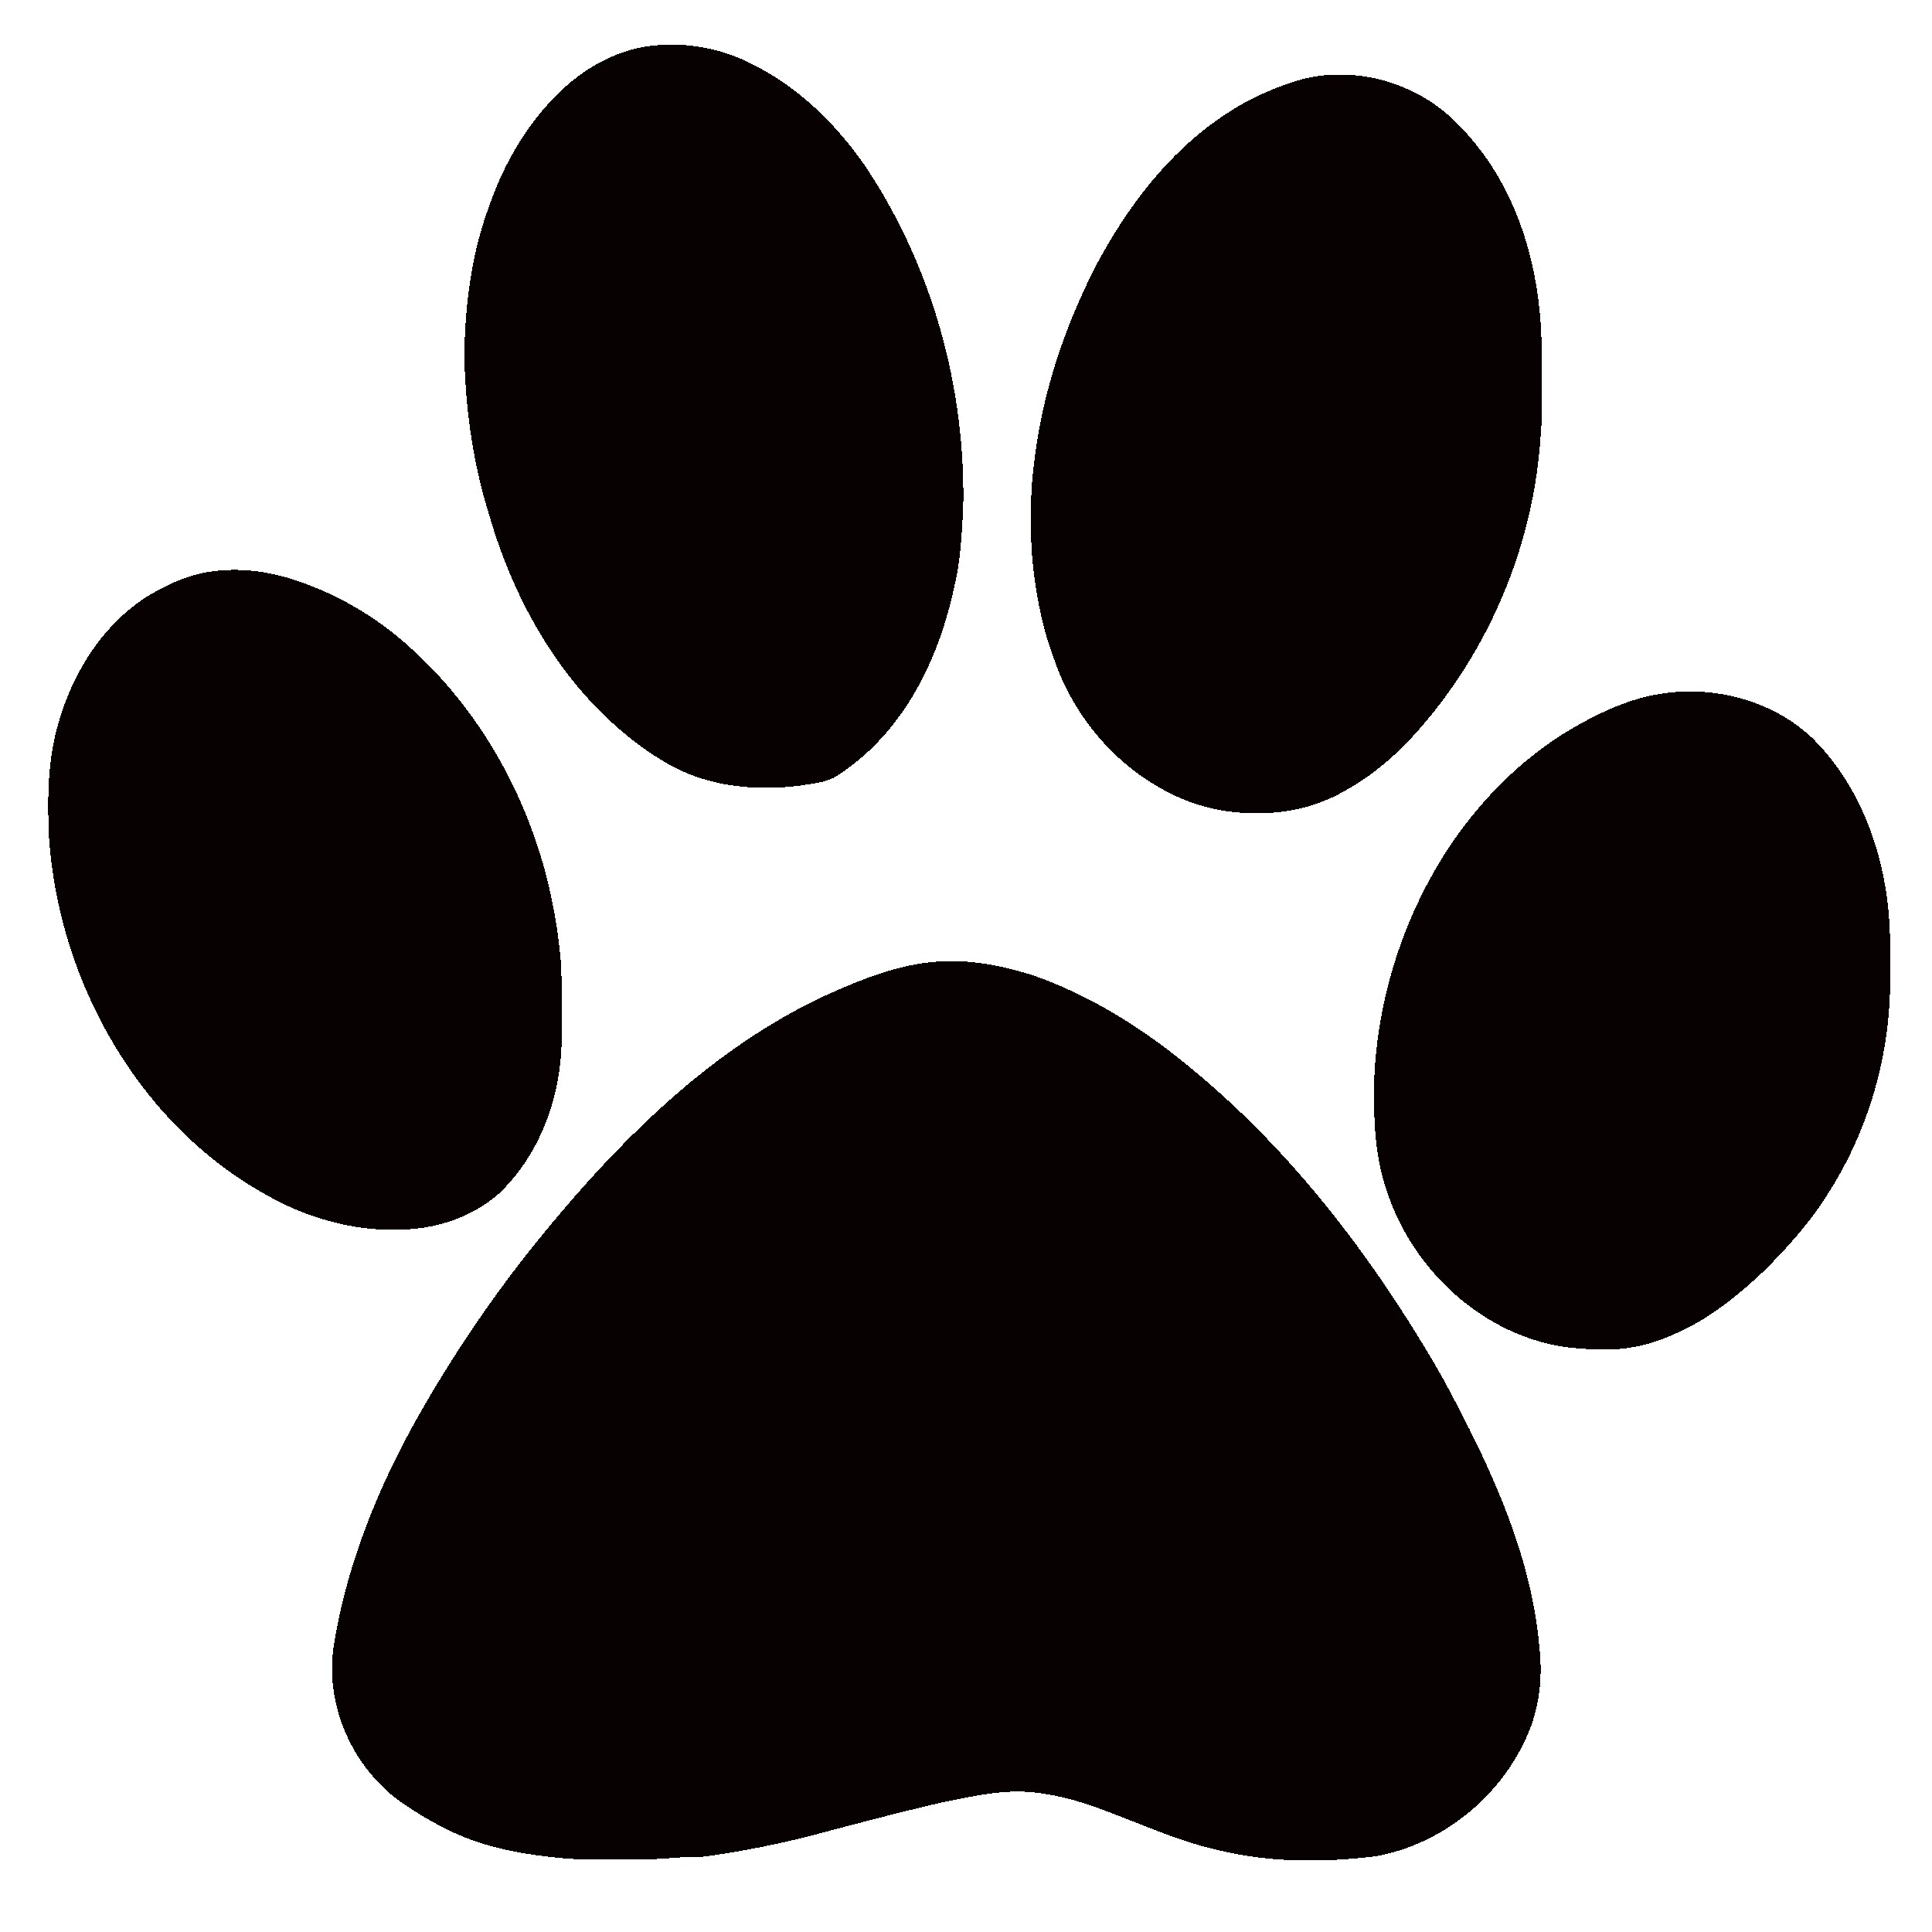 . hdclipartall.com Cat Clip Art Clipart Panther Paw Print Clip Art Clipart Best Locker  Prepossessing hdclipartall.com